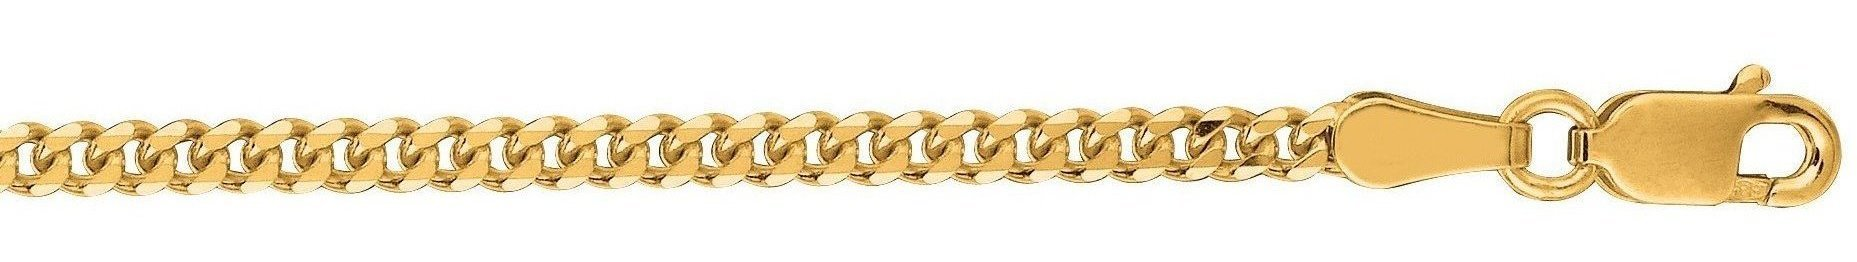 "24"" 10K Yellow Gold 2.0mm (0.08"") Polished Diamond Cut Gourmette Chain w/ Lobster Clasp"